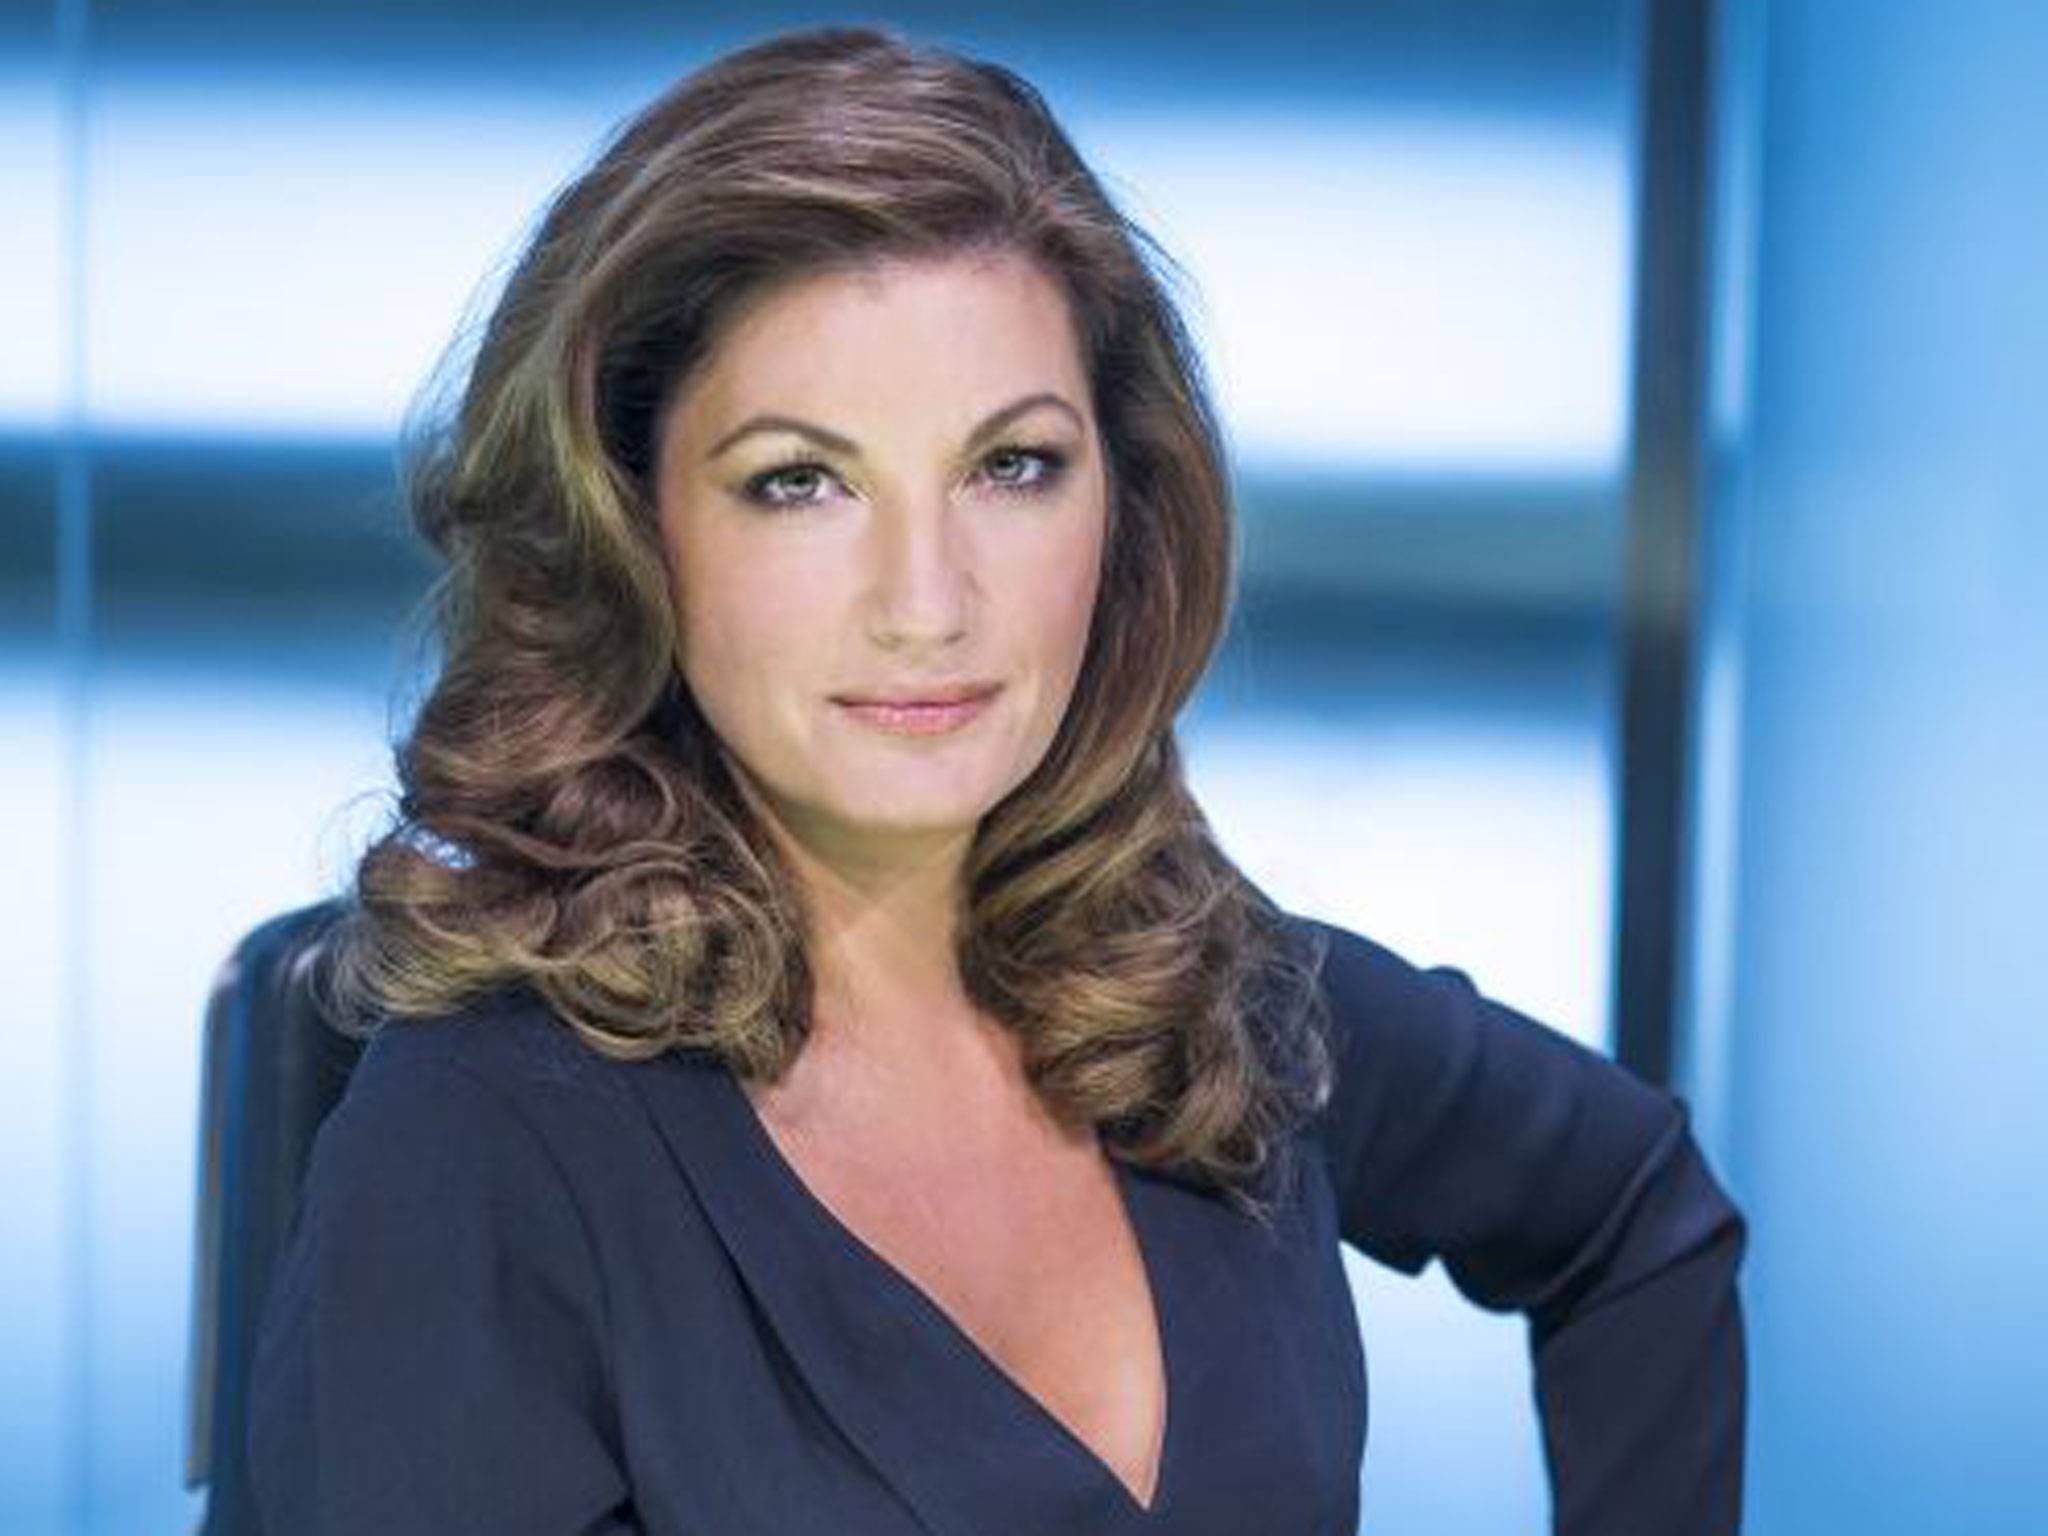 West Ham United vice-chairman and The Apprentice star Karren Brady was among those who had their personal data targeted by consultants working for Tottenham Hotspur